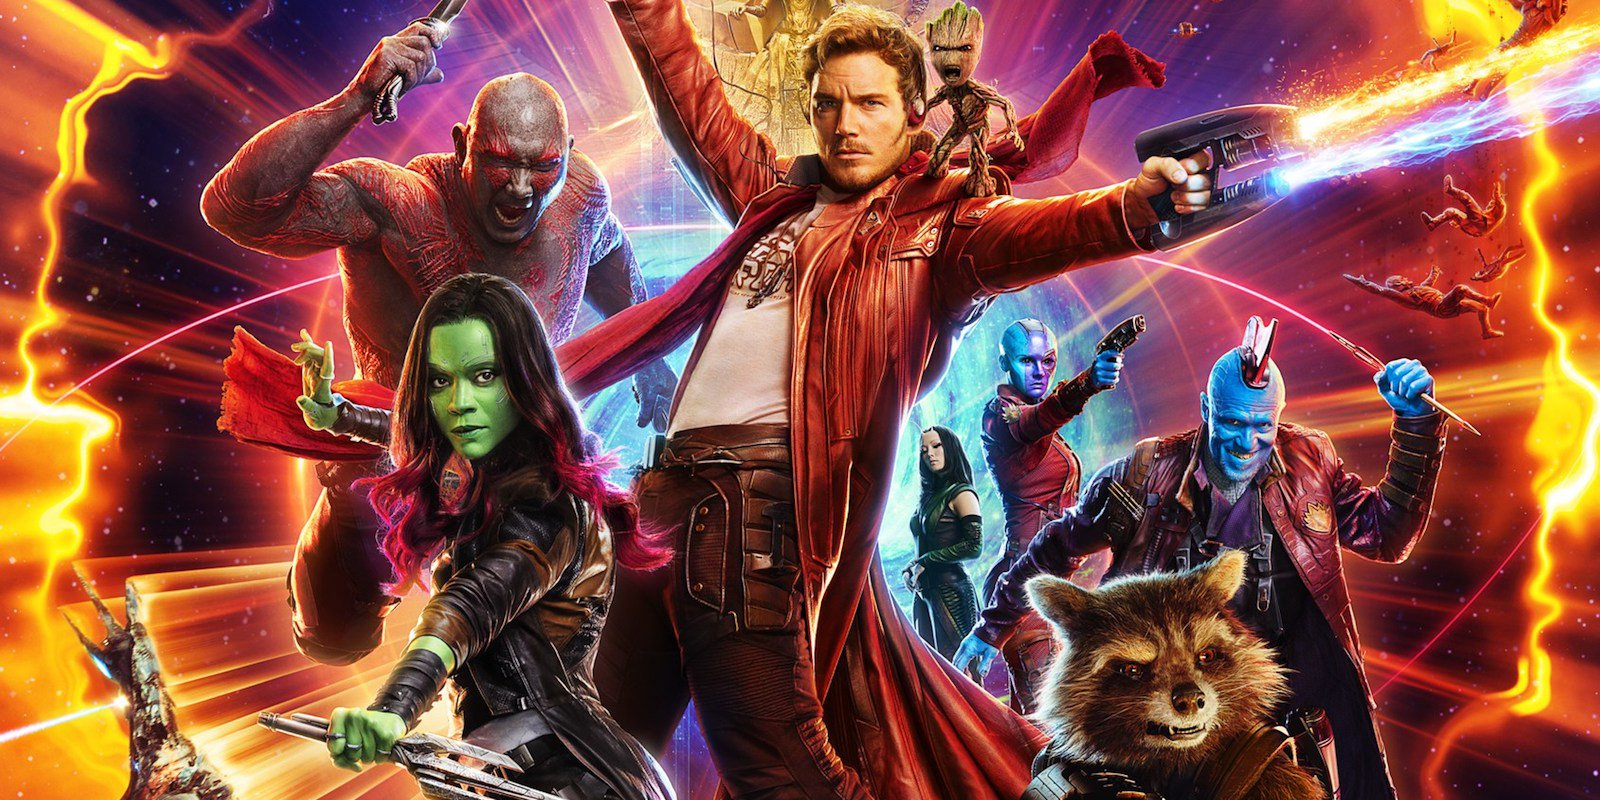 Guardians-of-the-Galaxy-Vol-2-wallpaper (1)